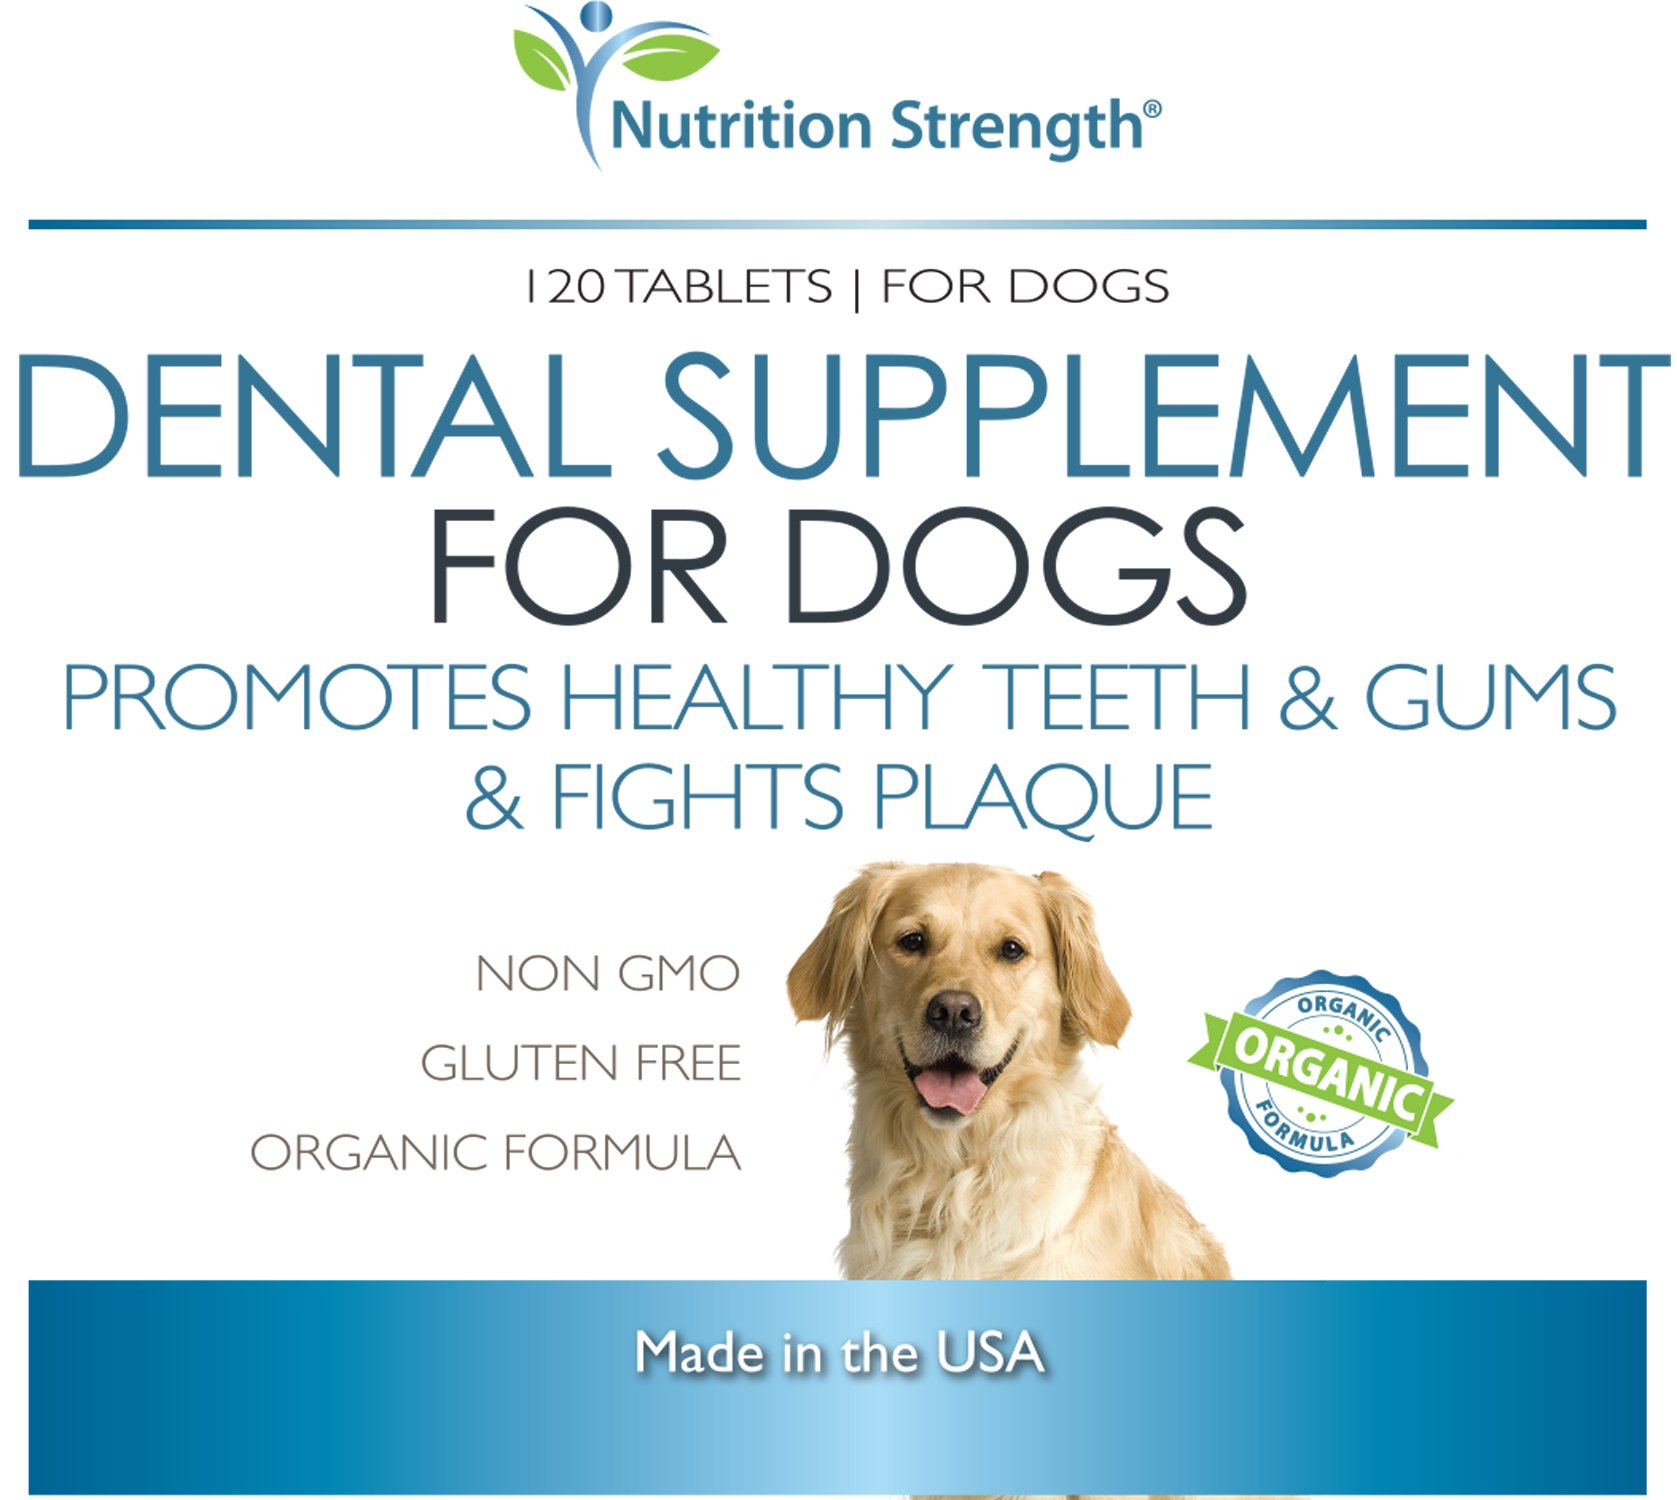 Nutrition Strength Dental Care for Dogs, Daily Supplement for Healthy Dog Gums and Teeth with All-Organic Ingredients, 120 Chewable Tablets by Nutrition Strength (Image #6)